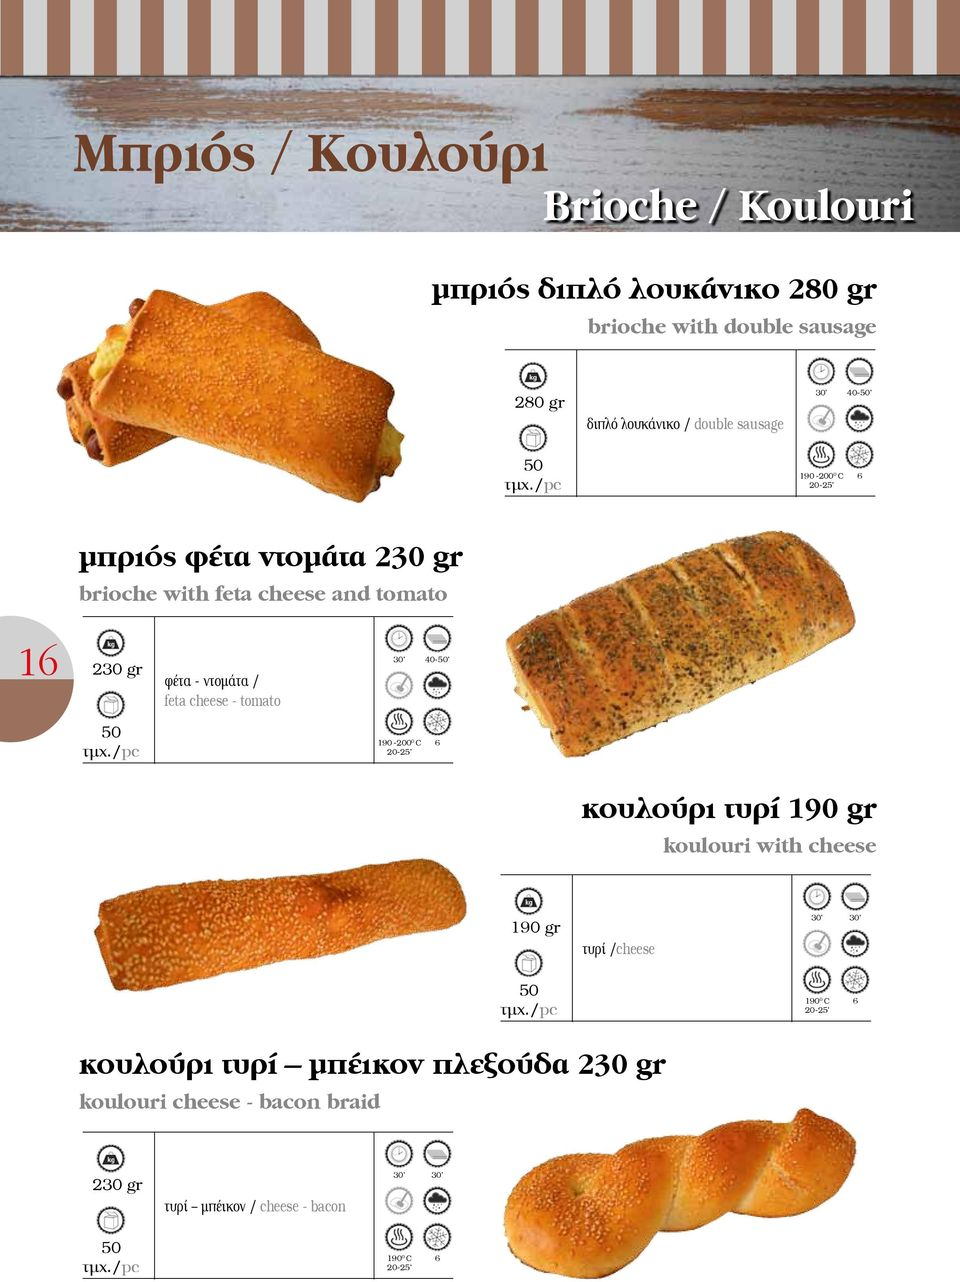 feta cheese - tomato 30 40-50 50 190-200 0 C 20-25 κουλούρι τυρί 190 gr koulouri with cheese 190 gr τυρί /cheese 30 30 50 190 0 C